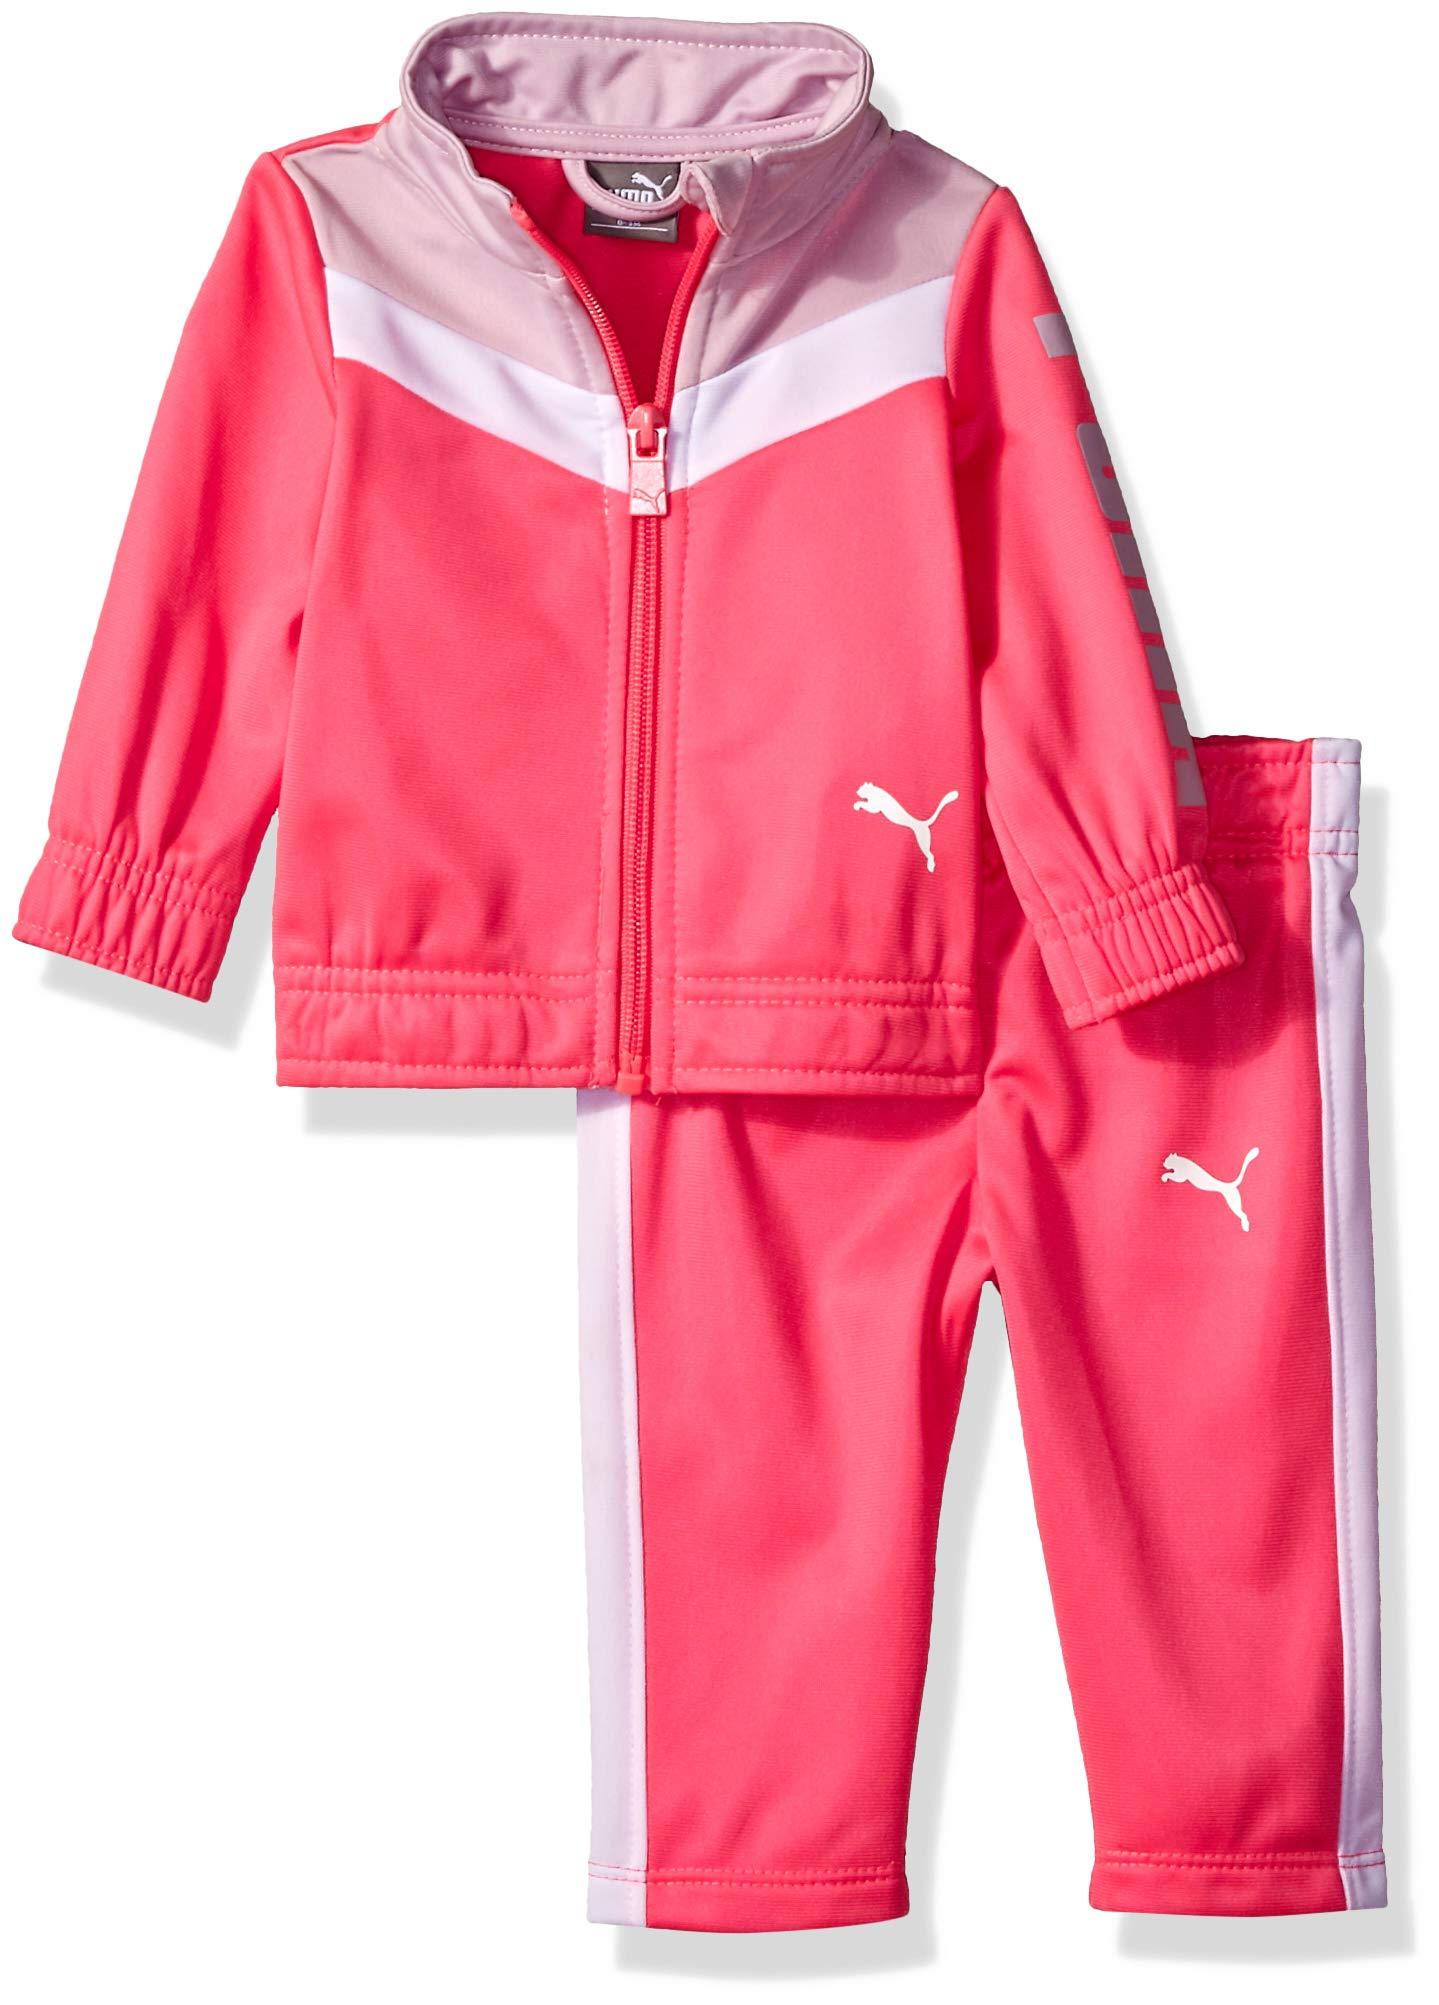 PUMA Baby Girls' Track Set, Knock Out Pink, 6-9M by PUMA